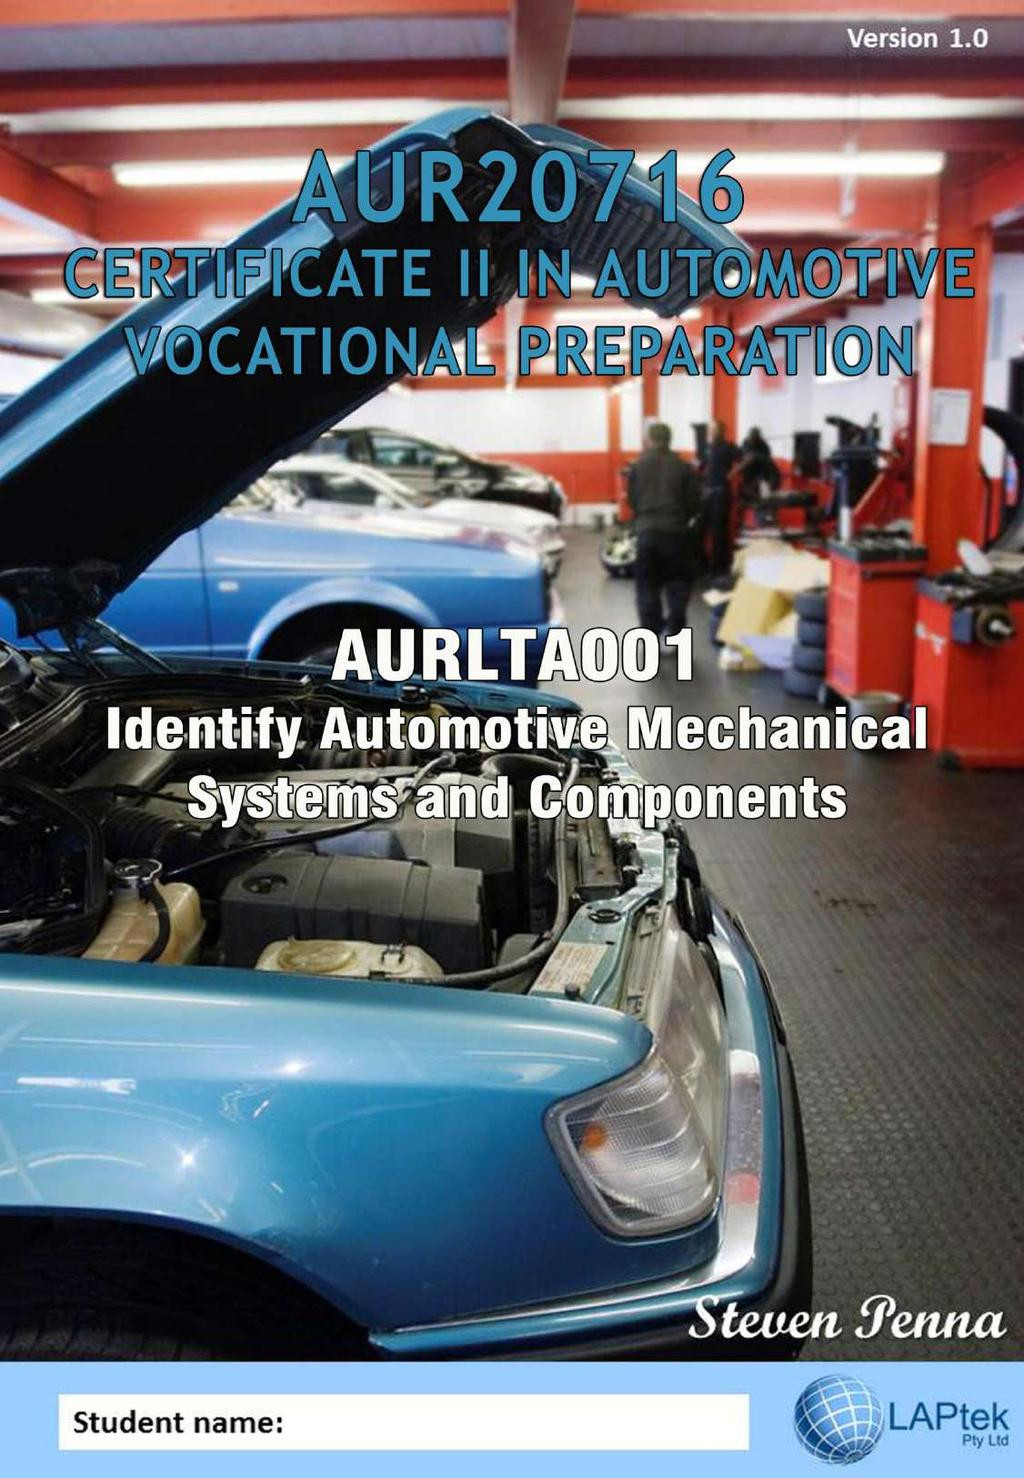 Automotive Worksheets for Highschool Students Aurlta001 Identify Automotive Mechanical Systems and